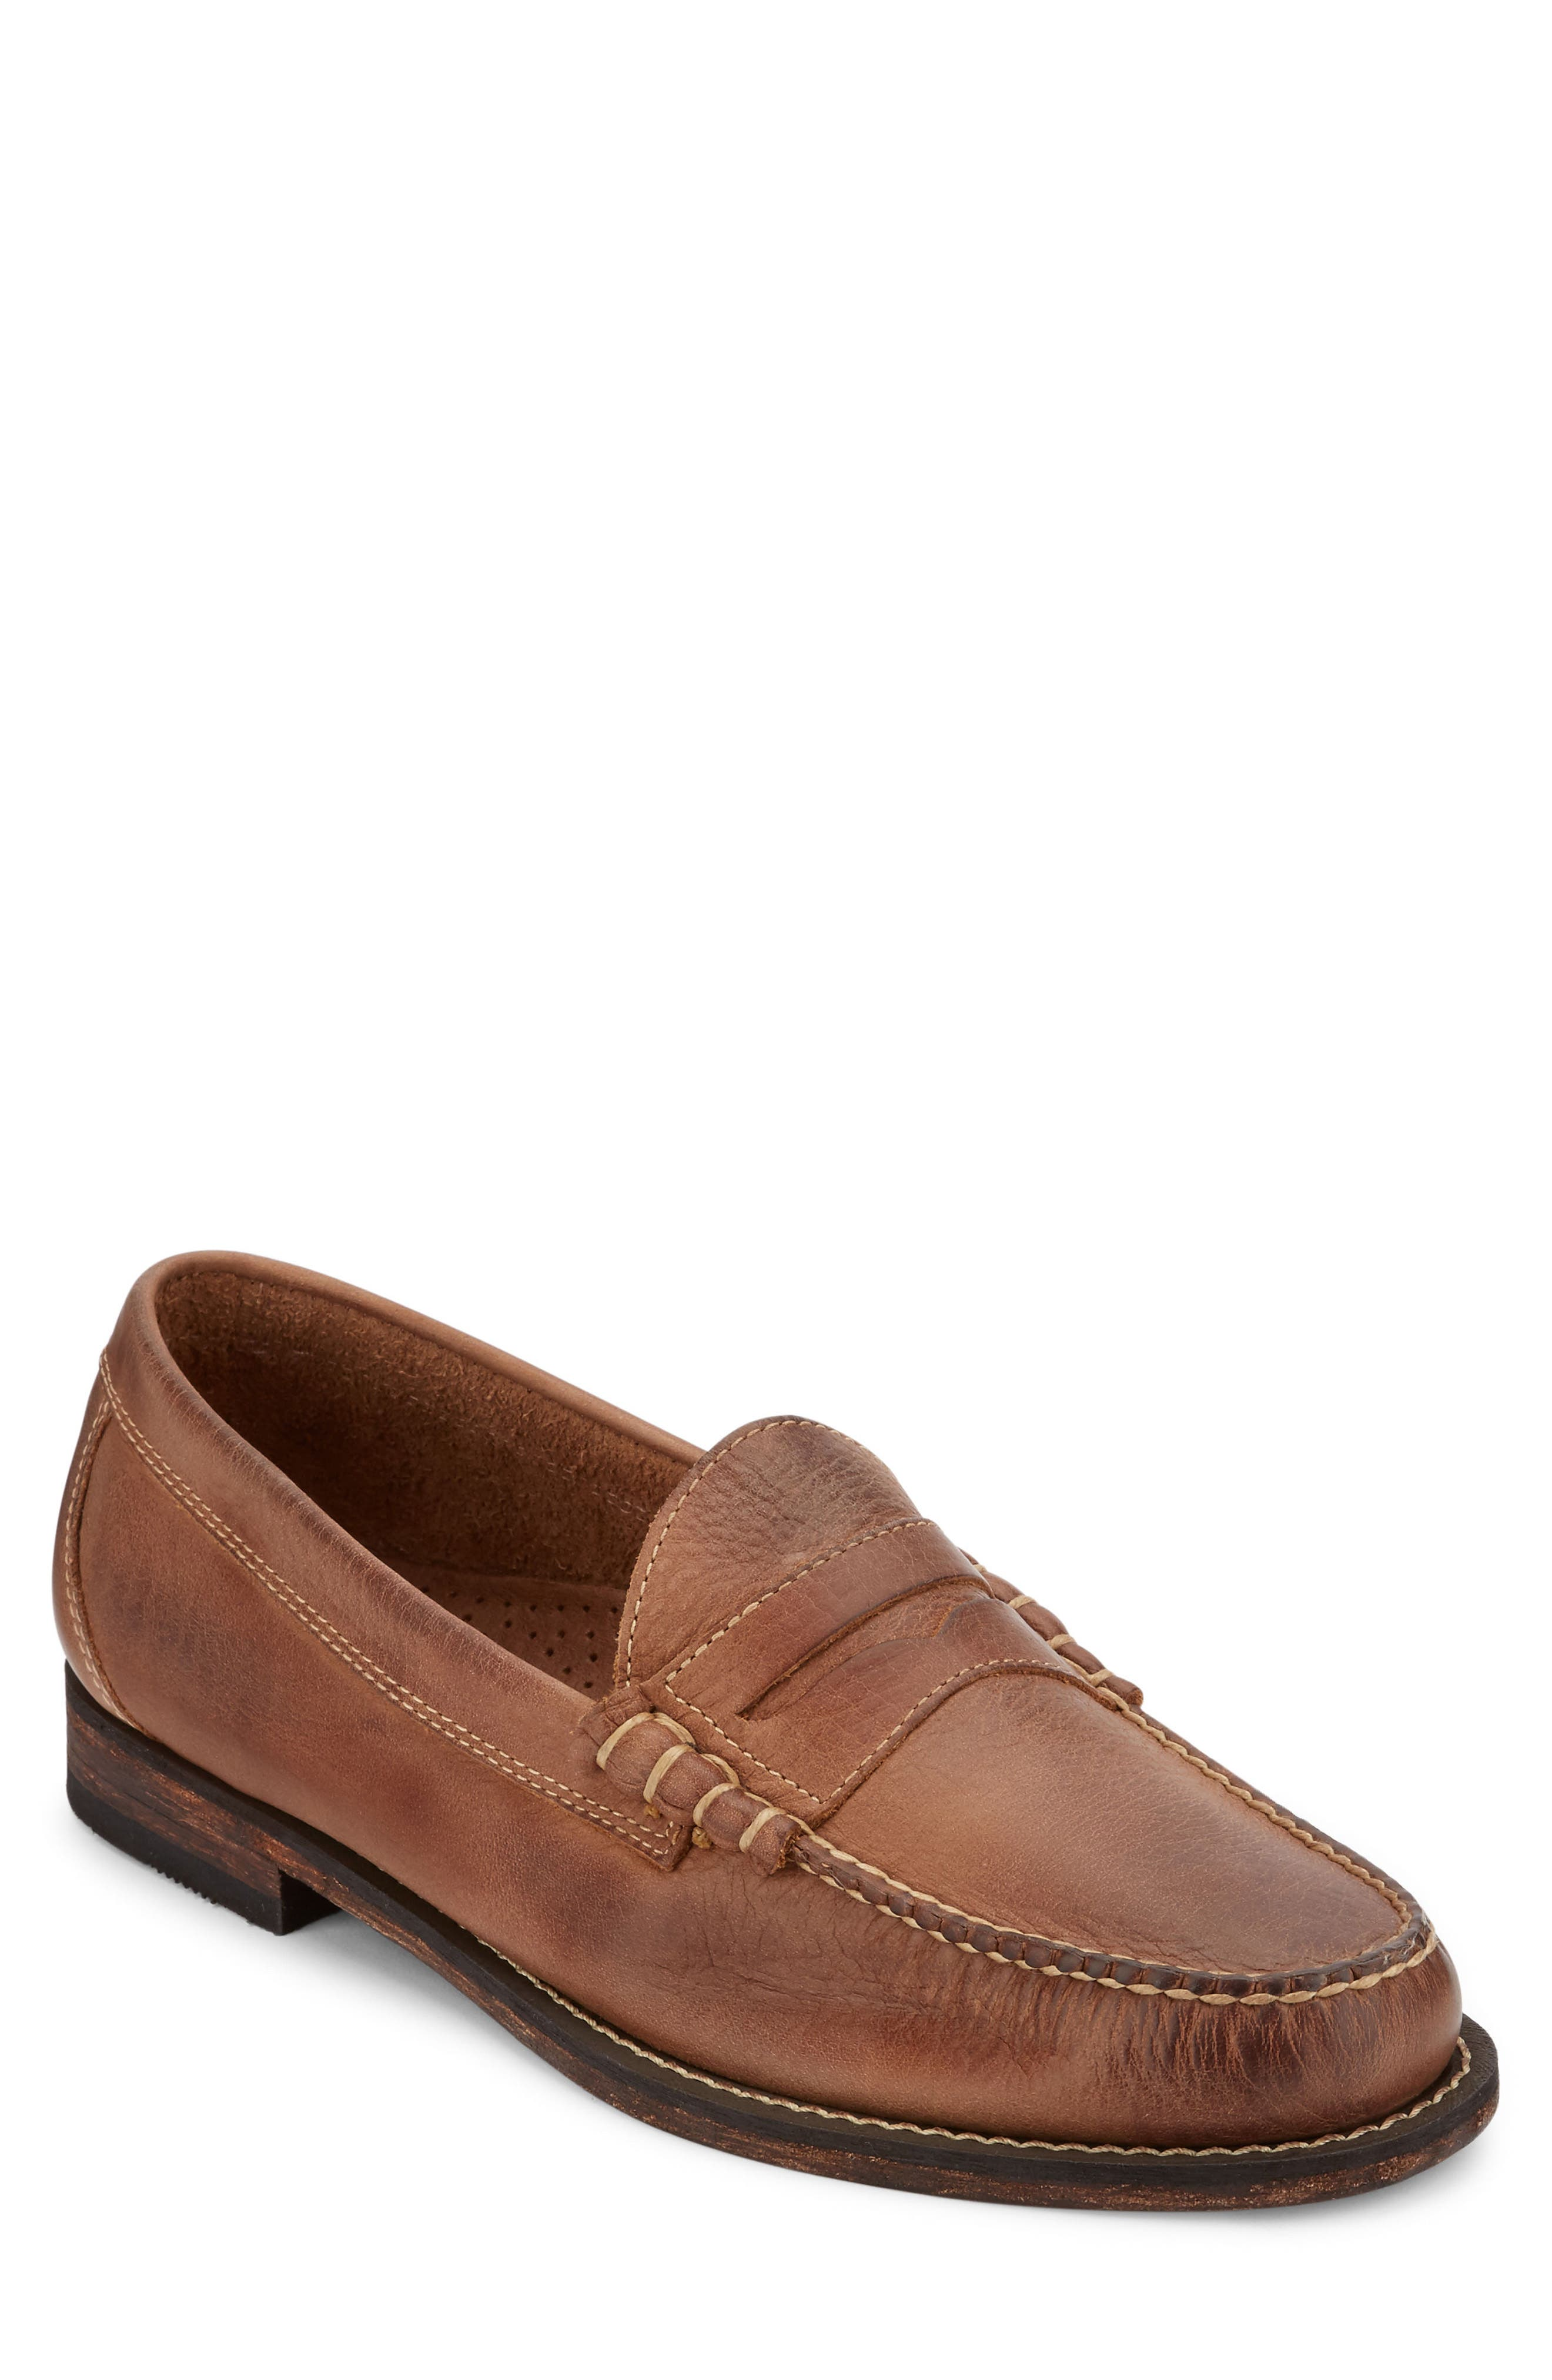 Hayden Penny Loafer,                             Main thumbnail 3, color,